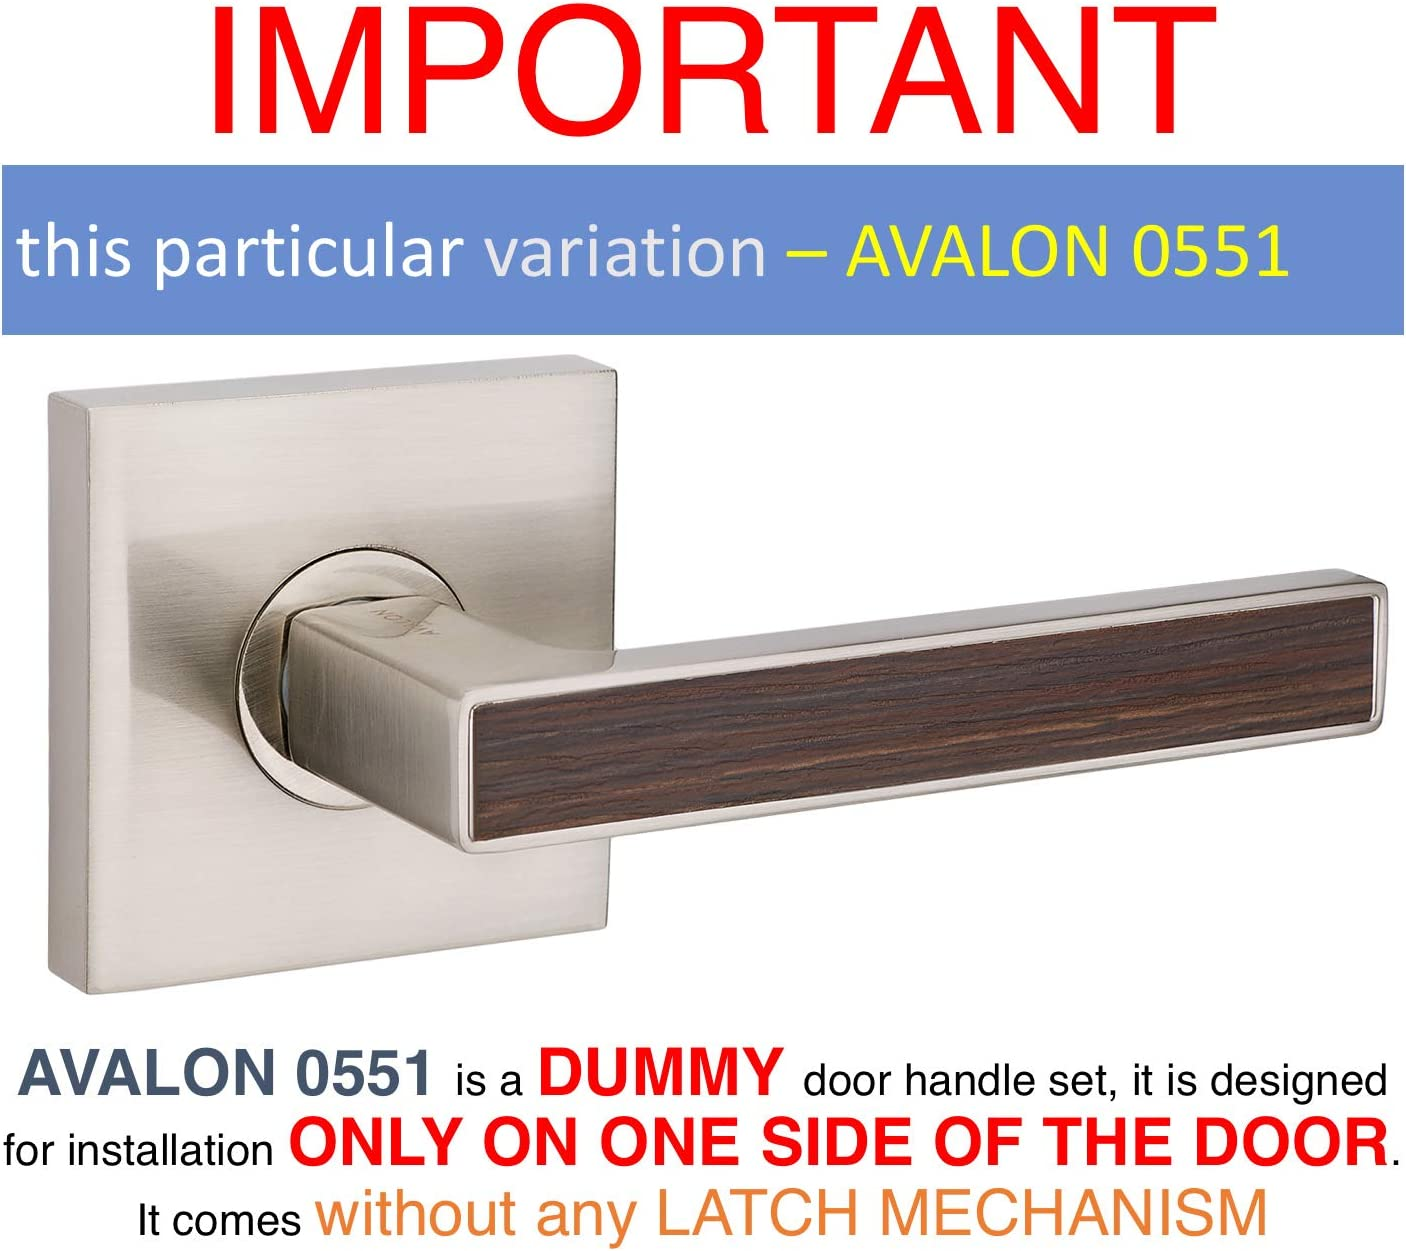 AVALON 0550 Contemporary // Modern Door Handles // Levers - Satin Nickel Finish with Wood Inset Privacy // Passage